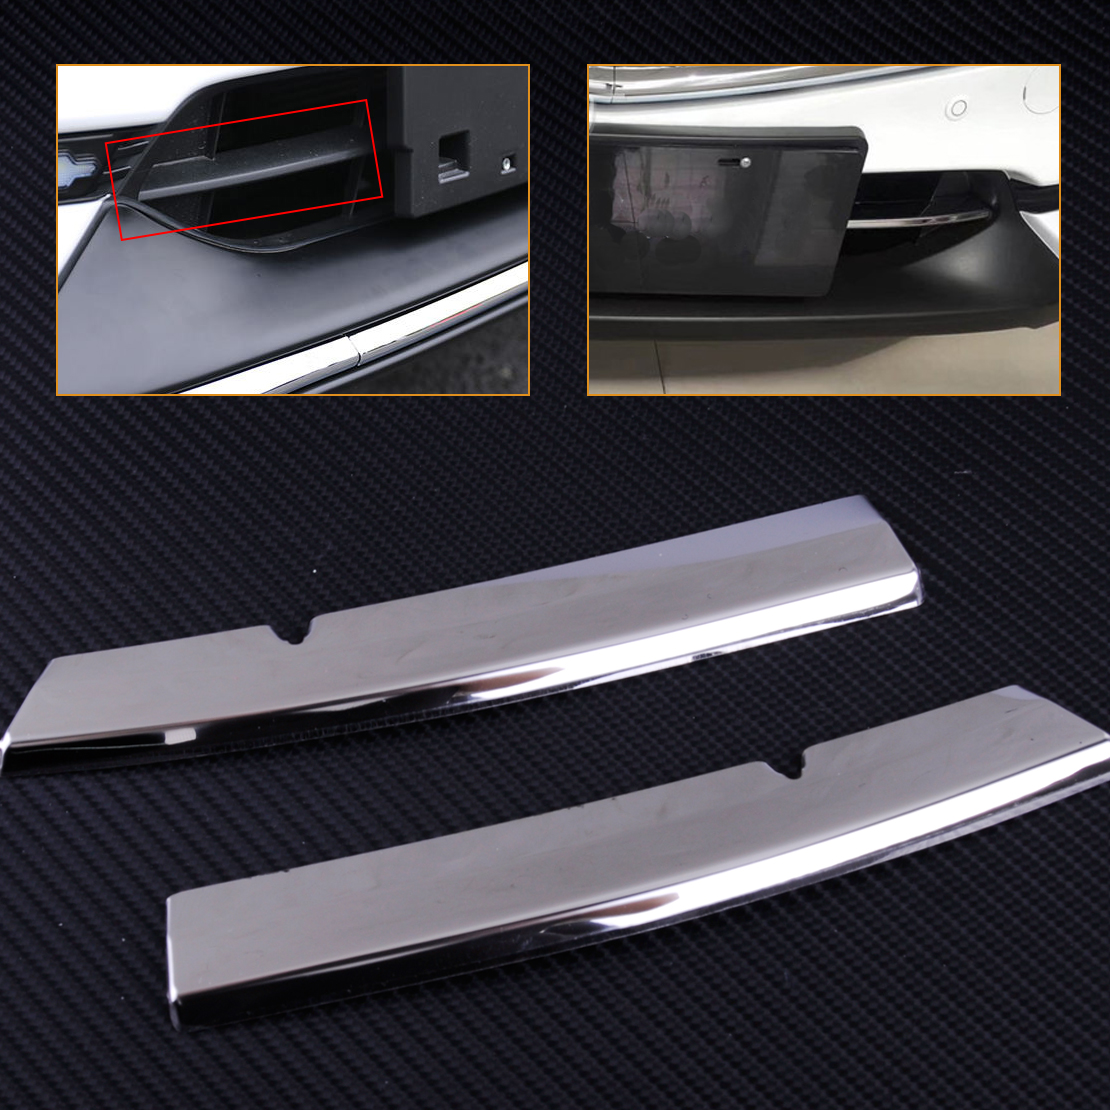 CITALL High Quality Stainless Steel Chrome Plated Grill Strips Bumper Air-inlet Grille Trims Fit for <font><b>Mazda</b></font> <font><b>CX5</b></font> 2017 2018 image